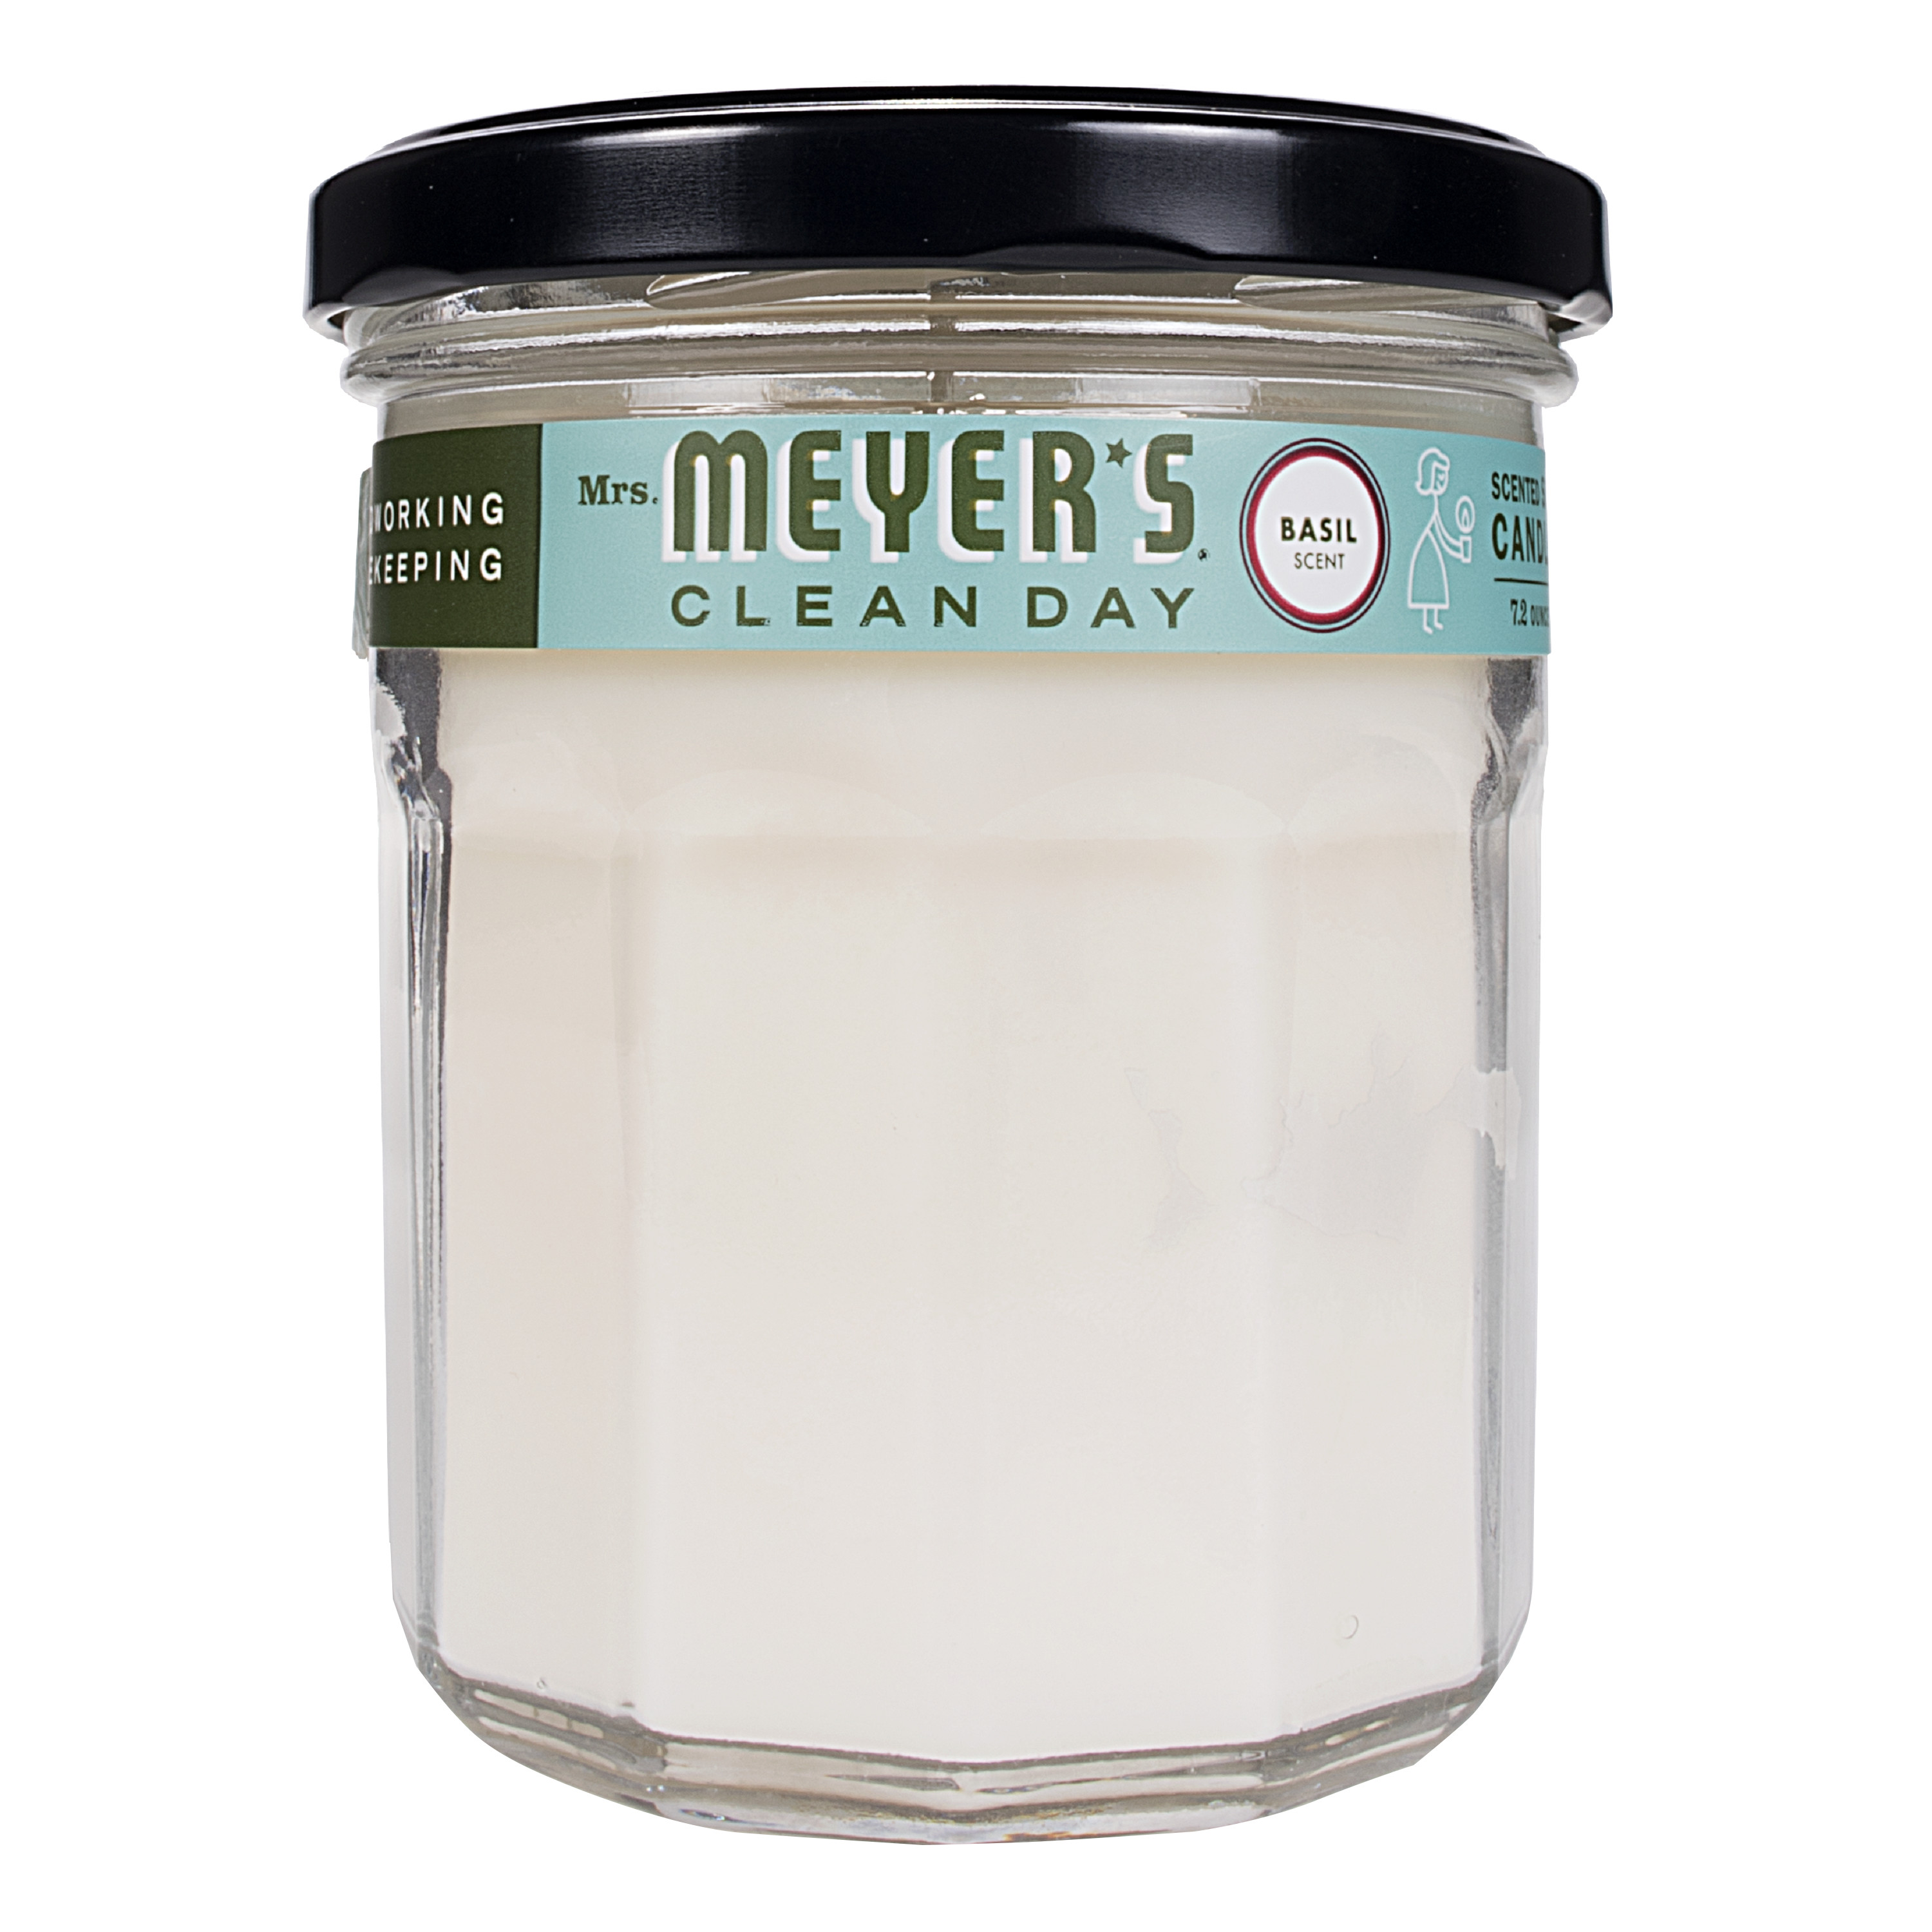 Mrs. Meyer's Clean Day Large Scented Soy Candle, Basil, 7.2 oz